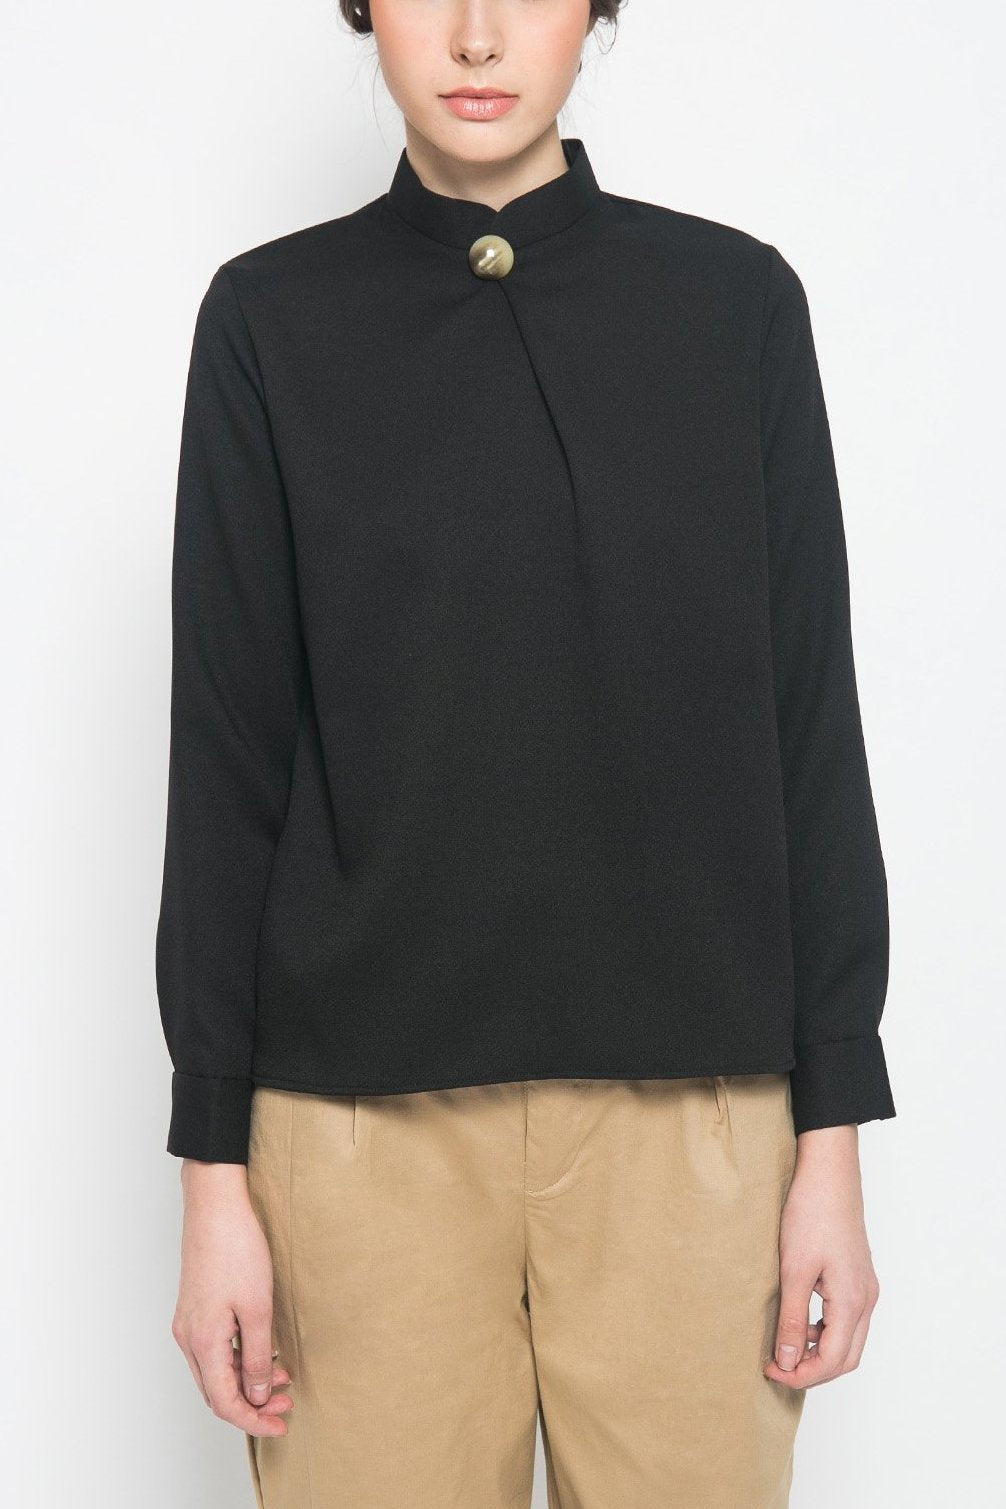 Ilana Top in Black